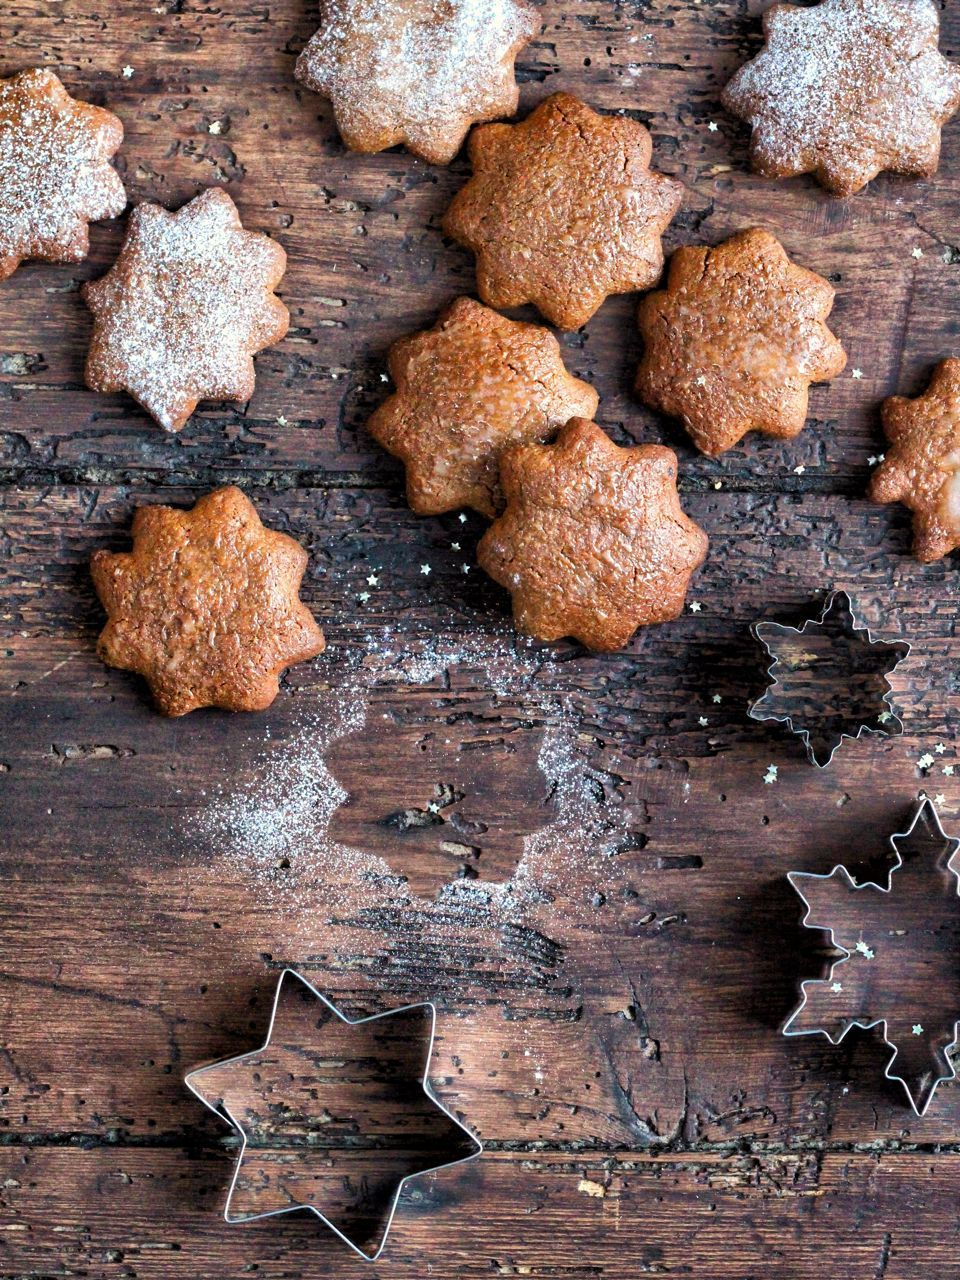 Lebkuchen A German Gingerbread Vegan And Gluten Free